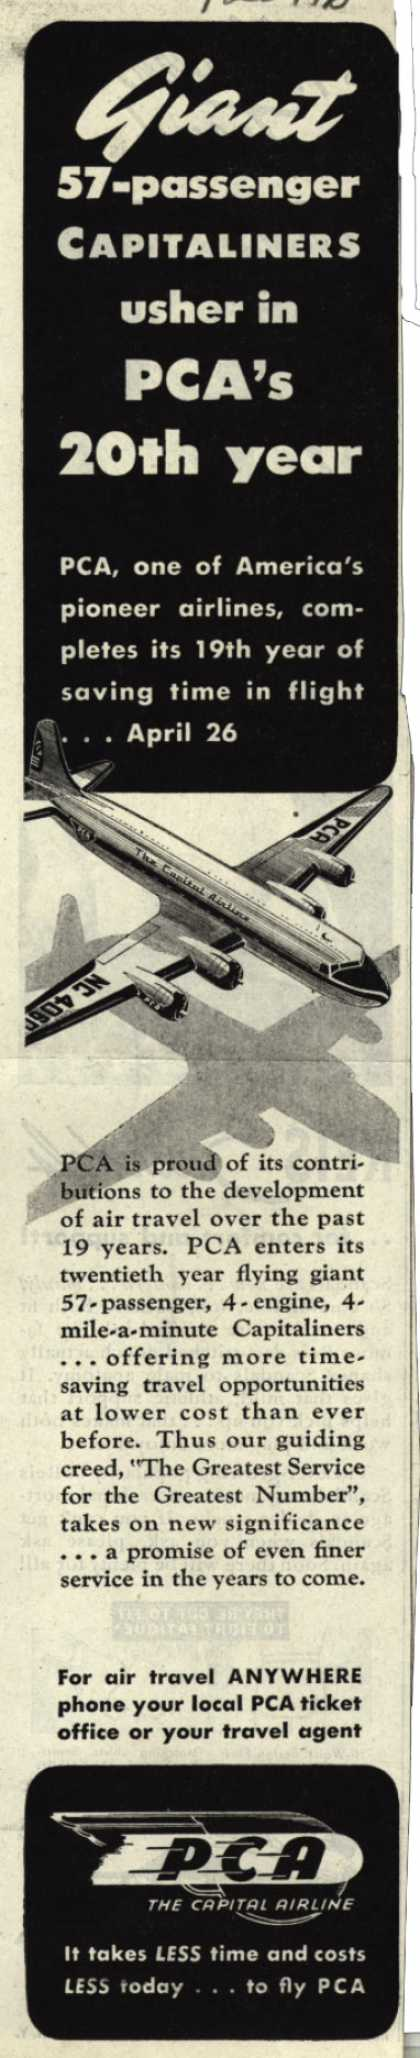 PCA's Capitaliners – Giant 57-passenger Capitaliners (1946)